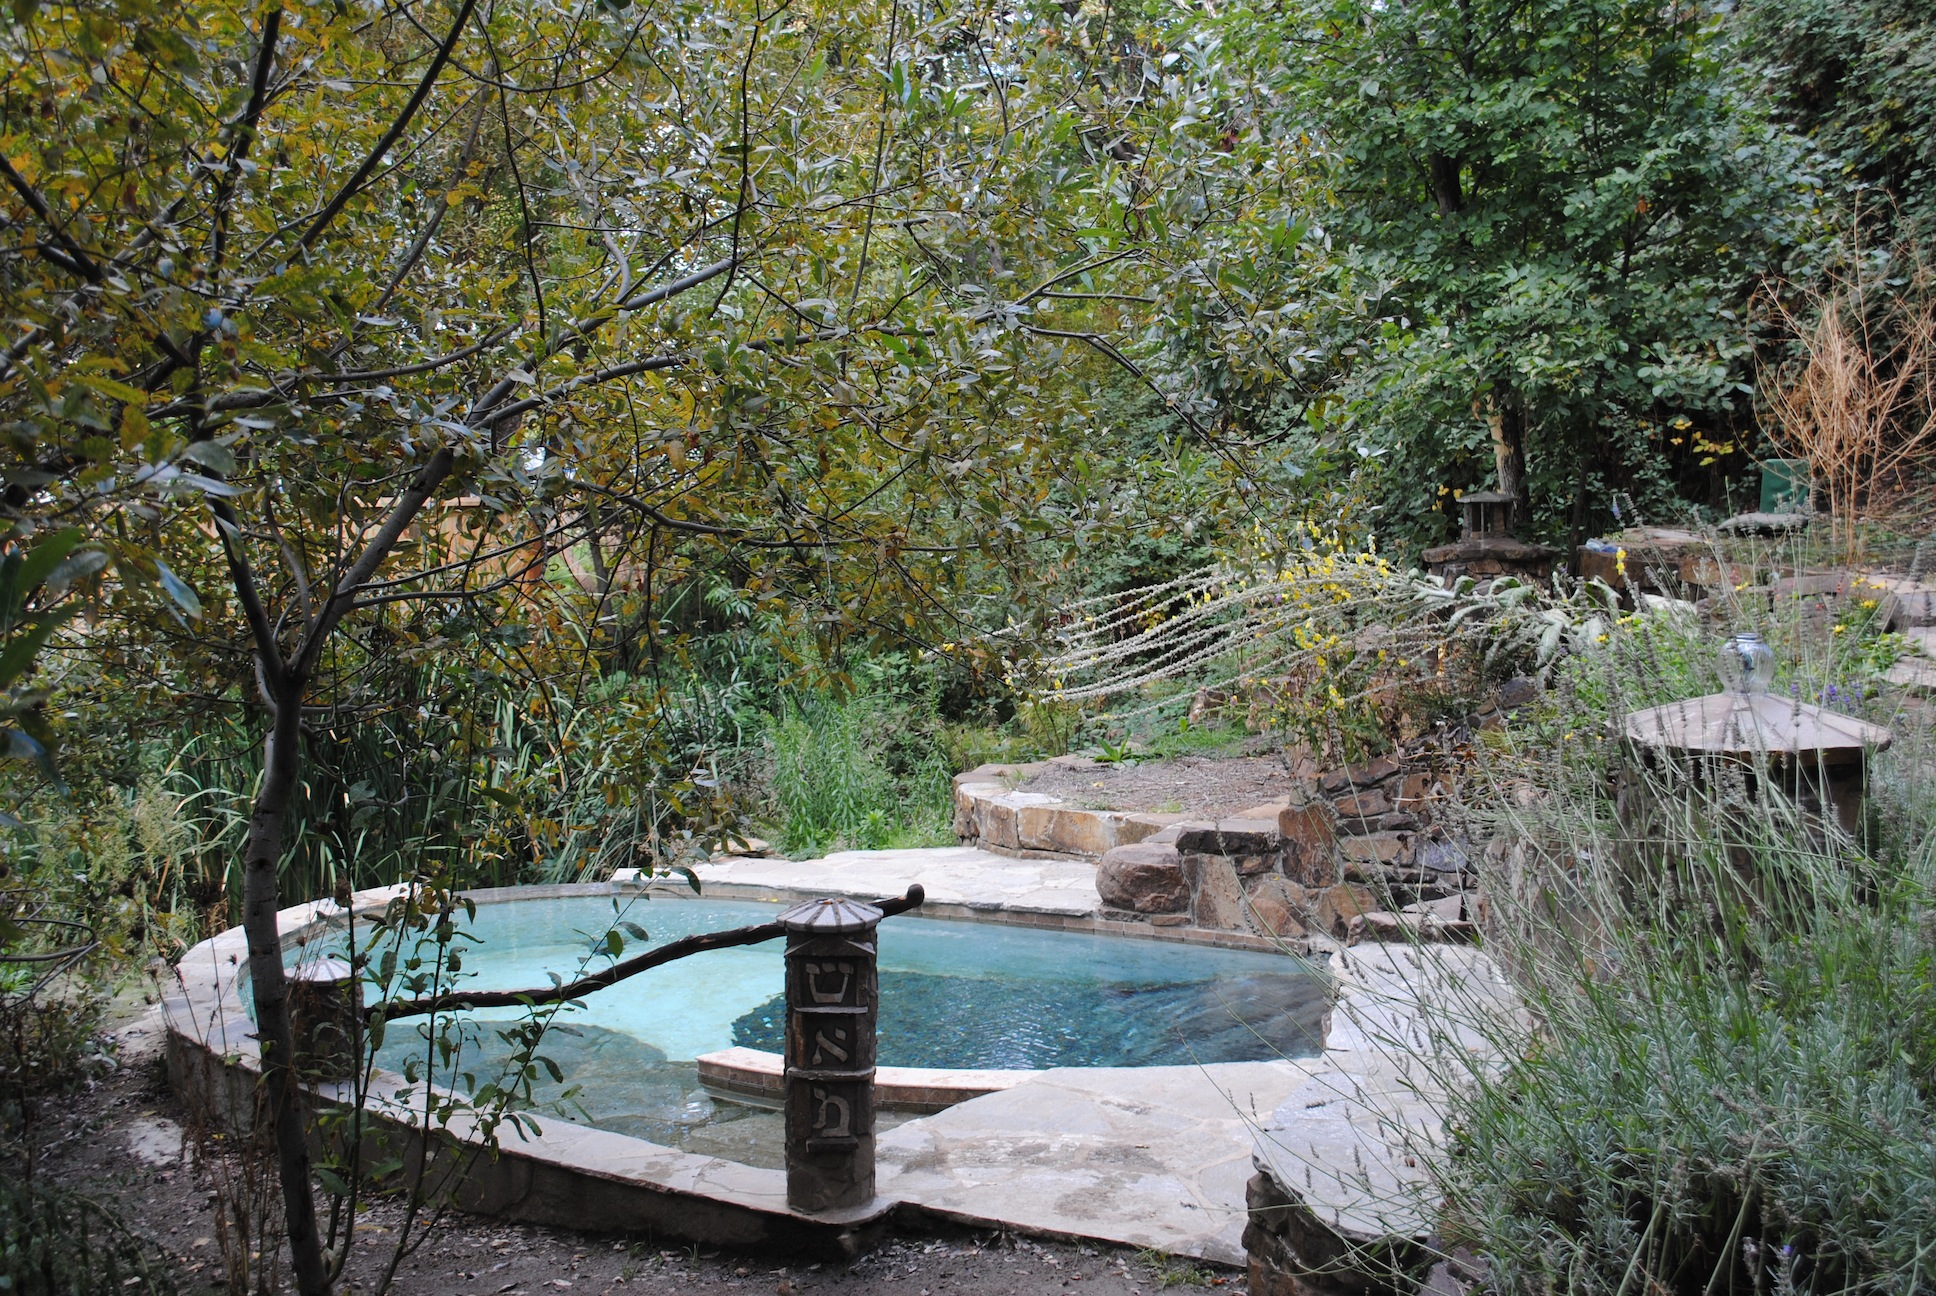 Ashland S Mikvah Located At The Jackson Wellsprings Spa Is Fed By An Underground Aquifer